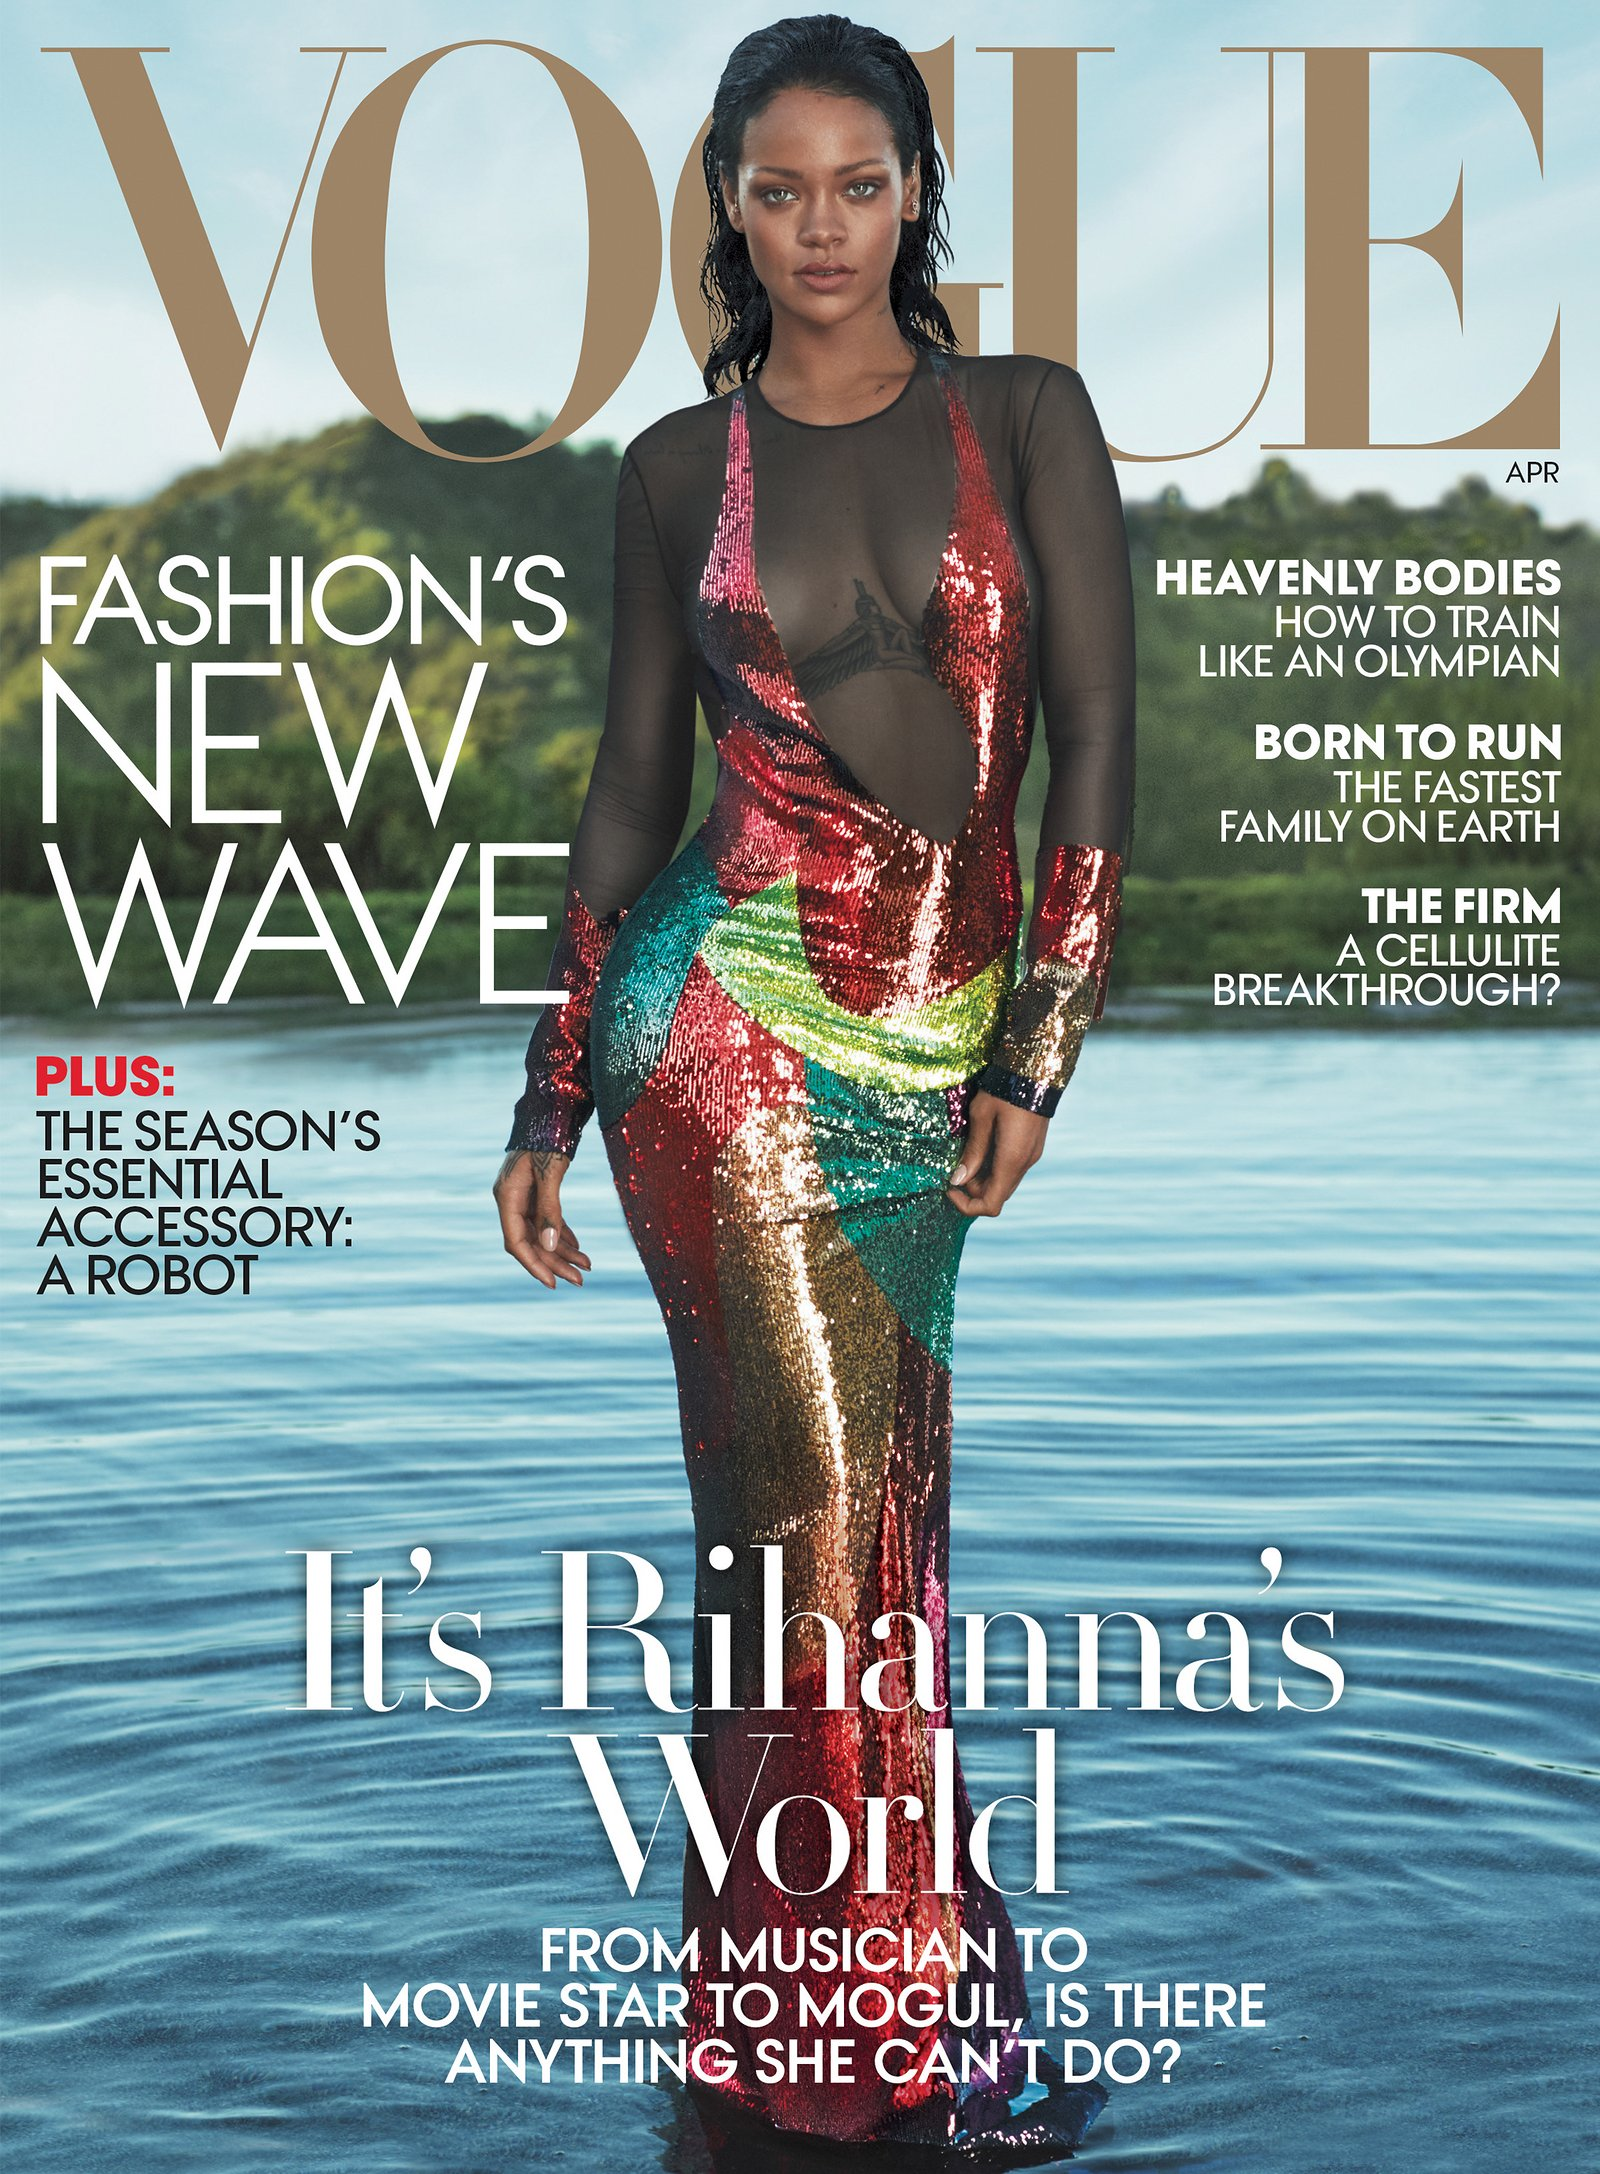 Rihanna Is Vogue's Cover Girl This April! [PHOTOS]